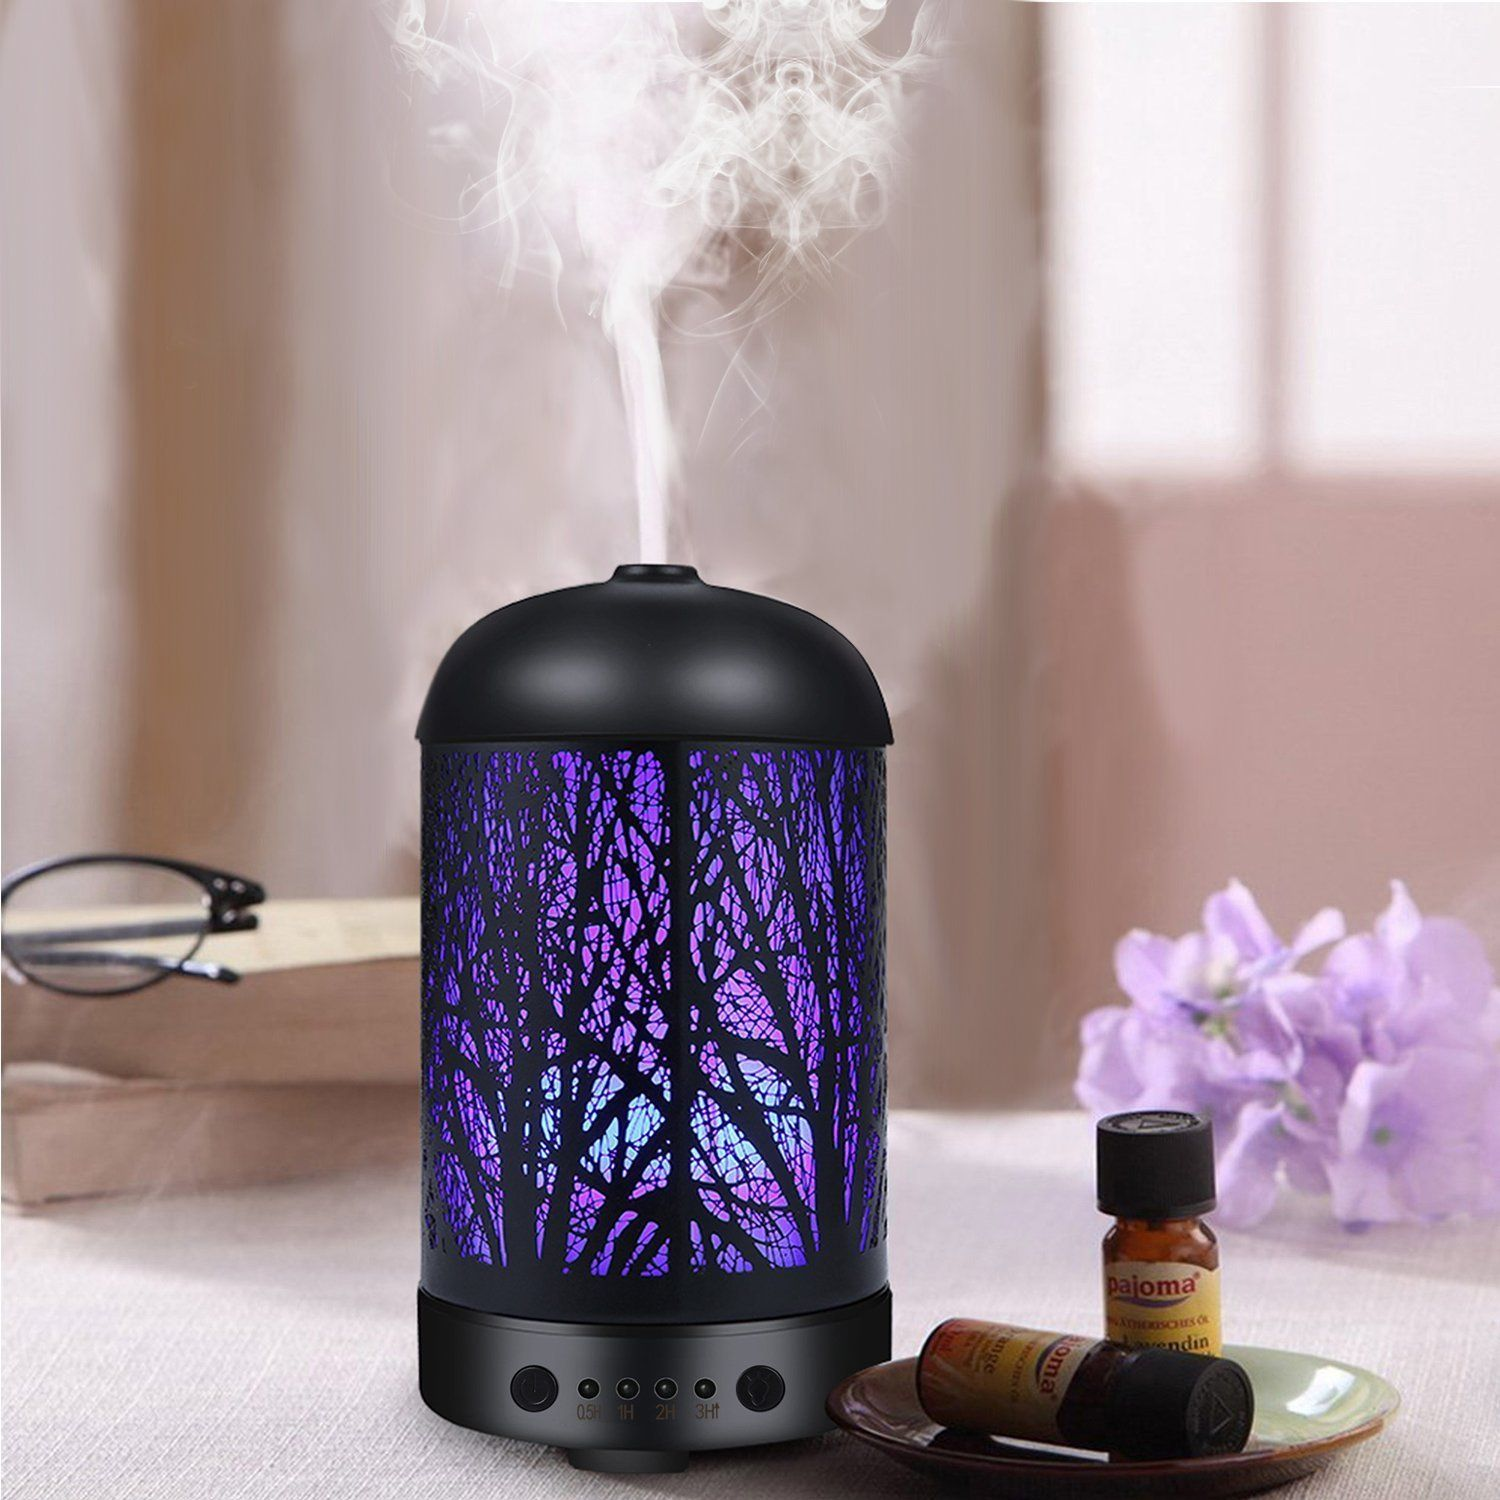 Coosa Genuine Unique Enchanted Forest Designed 100ml Ultrasonic Aromatherapy Essential Oil Diffuser Uk Pl Aroma Diffuser Humidifier Essential Oils Diffuser